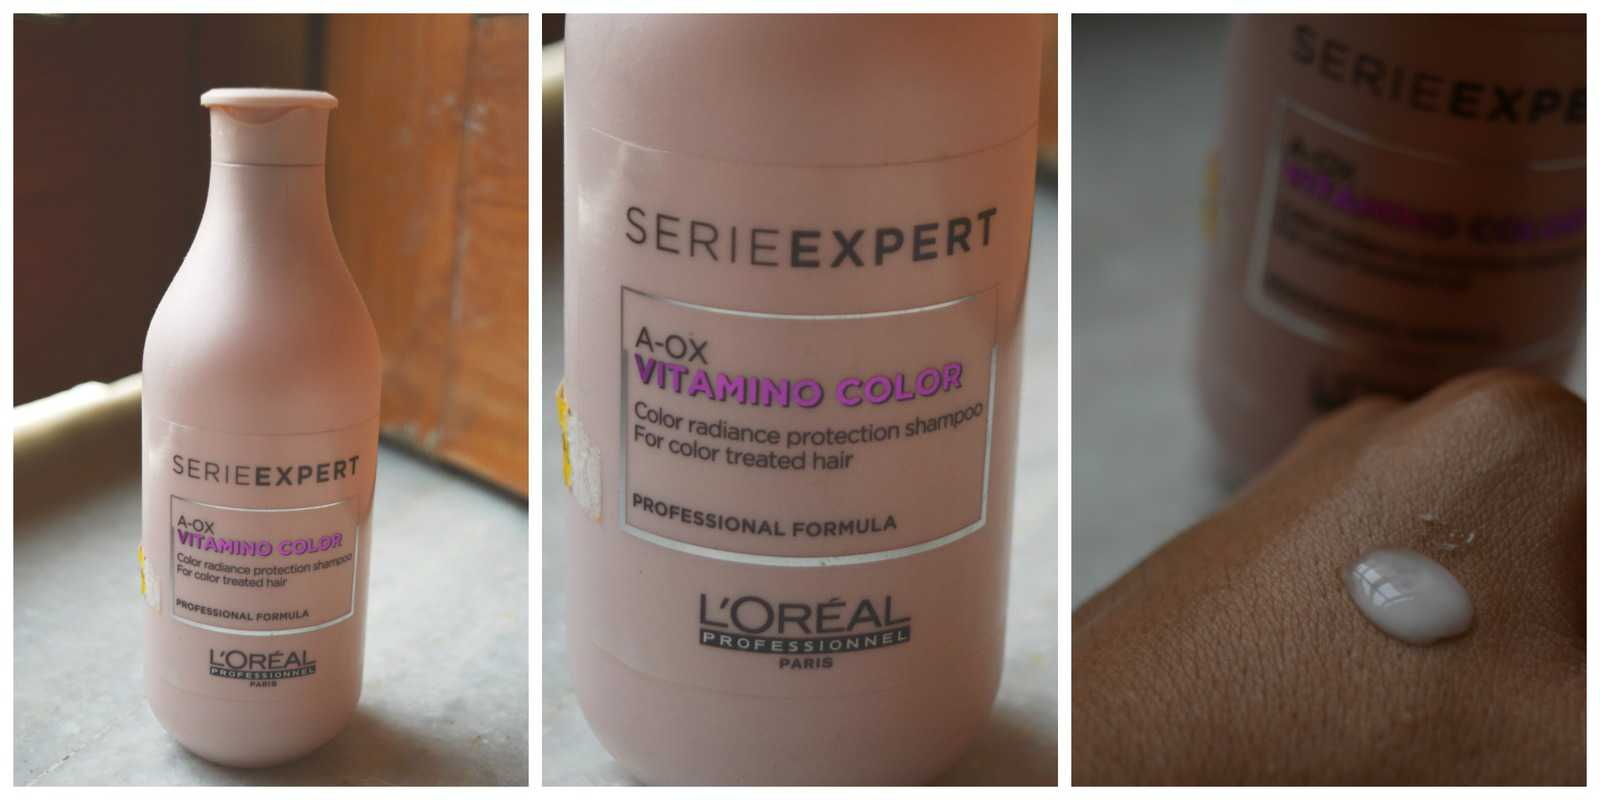 Loreal Professionnel Color Protection Shampoo is a color radiance protection shampoo for color treated hair.